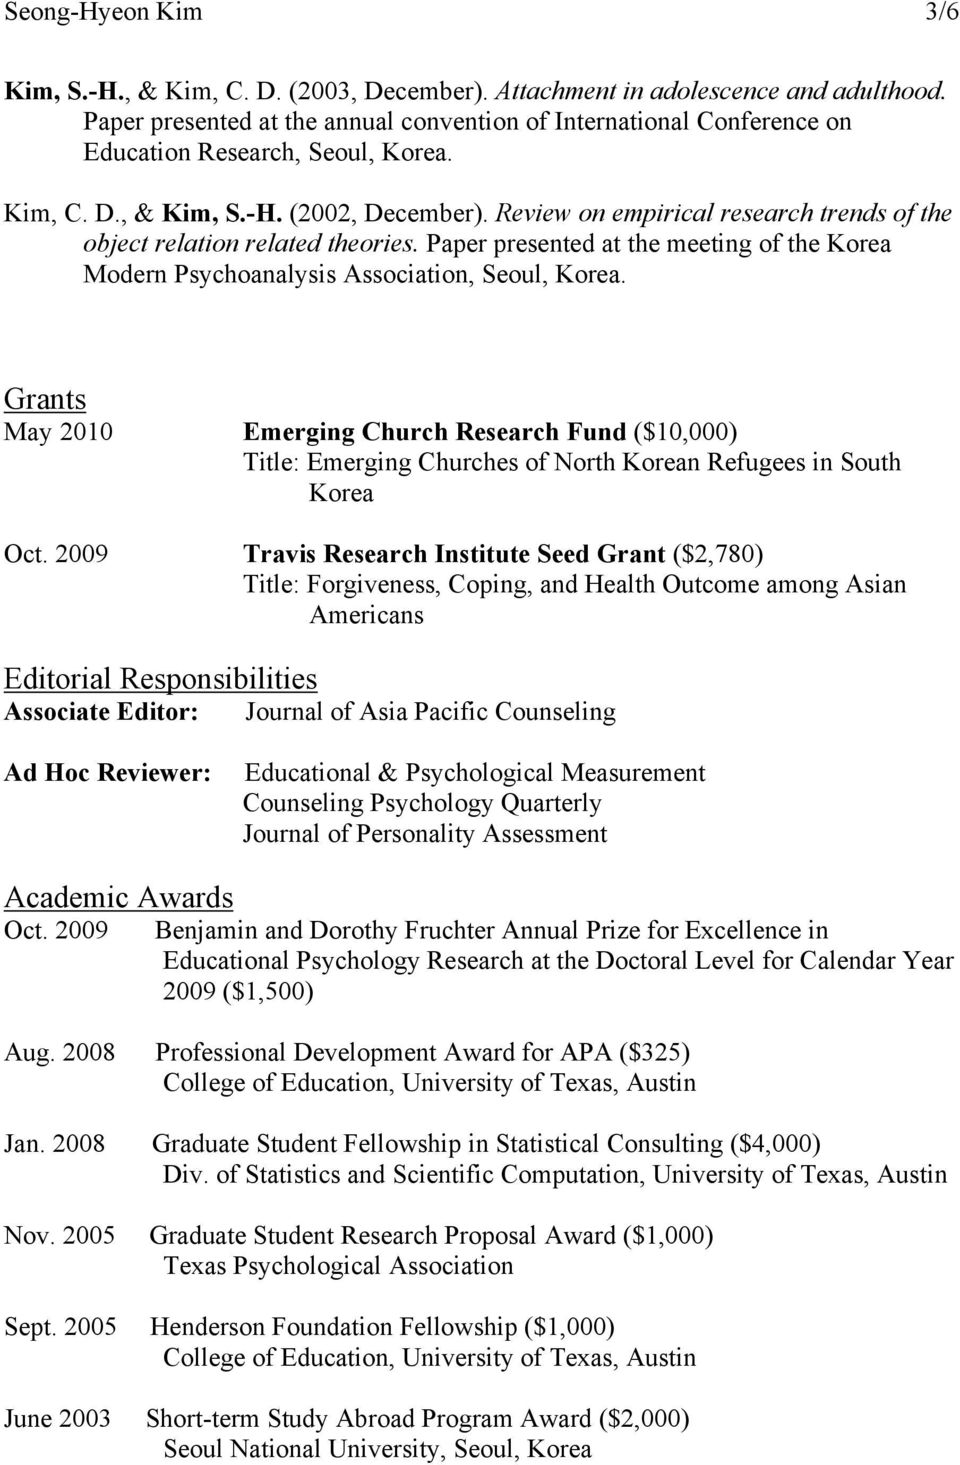 Review on empirical research trends of the object relation related theories. Paper presented at the meeting of the Korea Modern Psychoanalysis Association, Seoul, Korea.